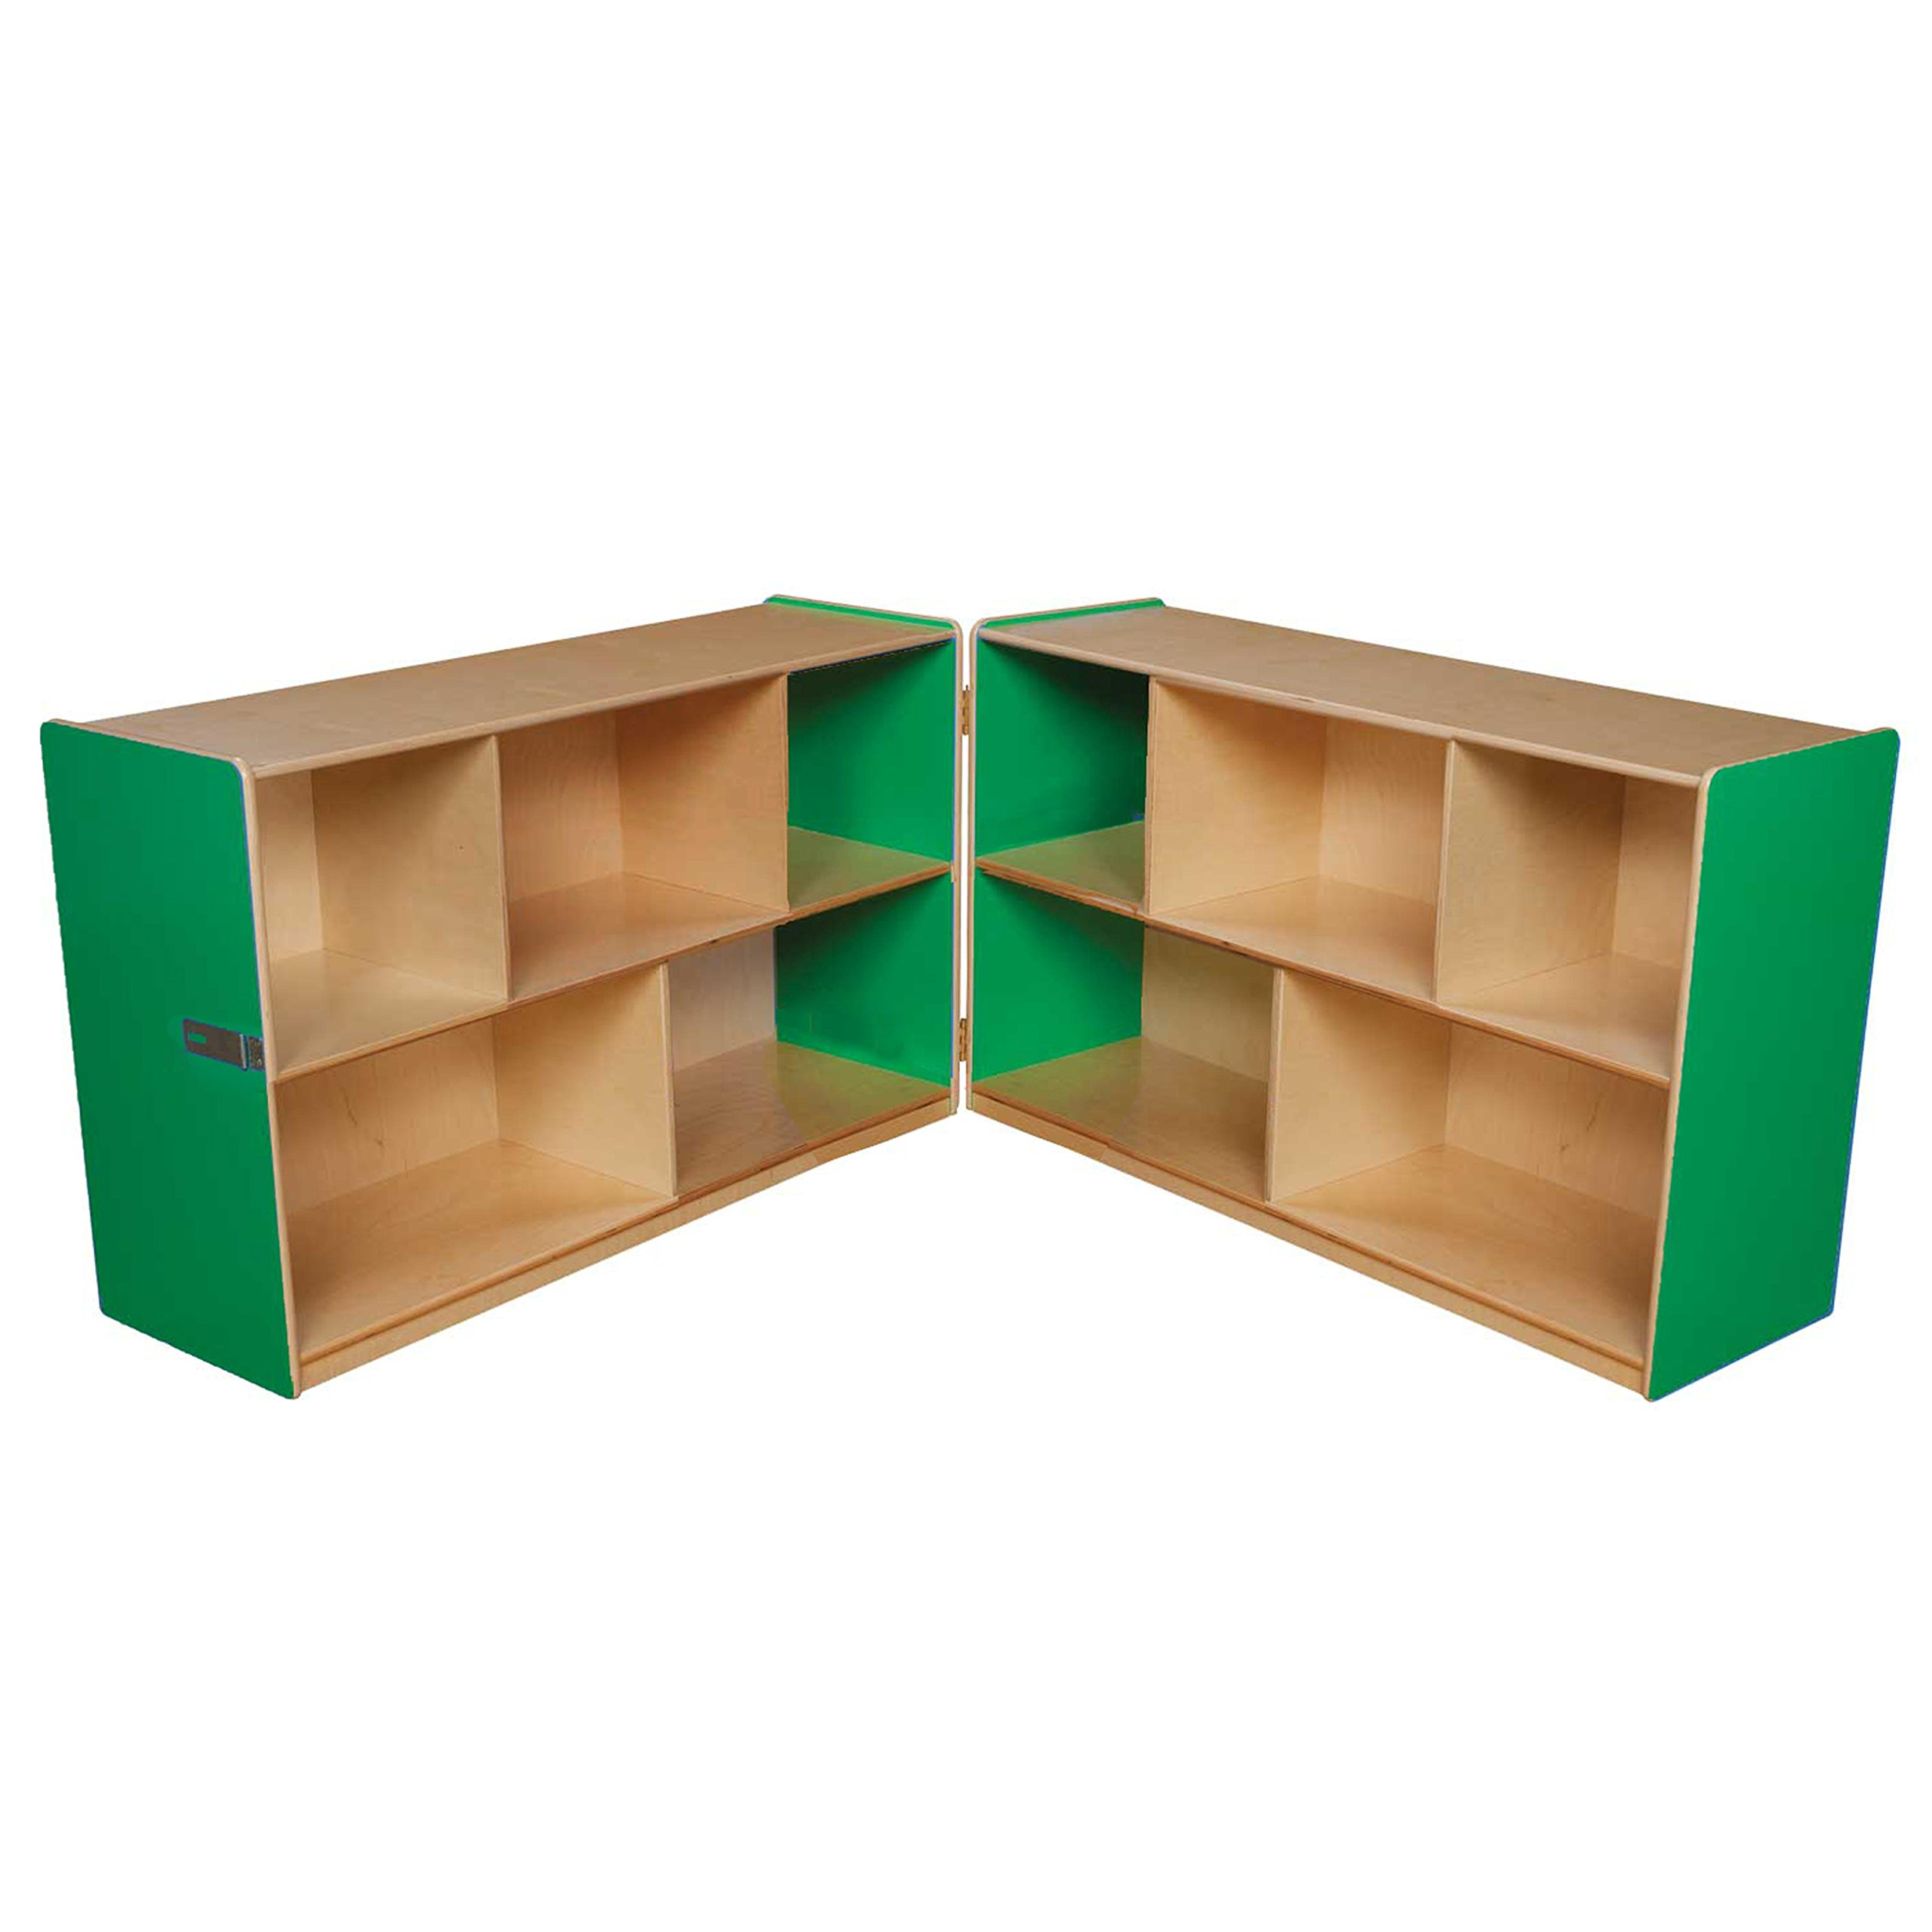 Wood Designs 13100G Green Apple Folding Storage, 30''H